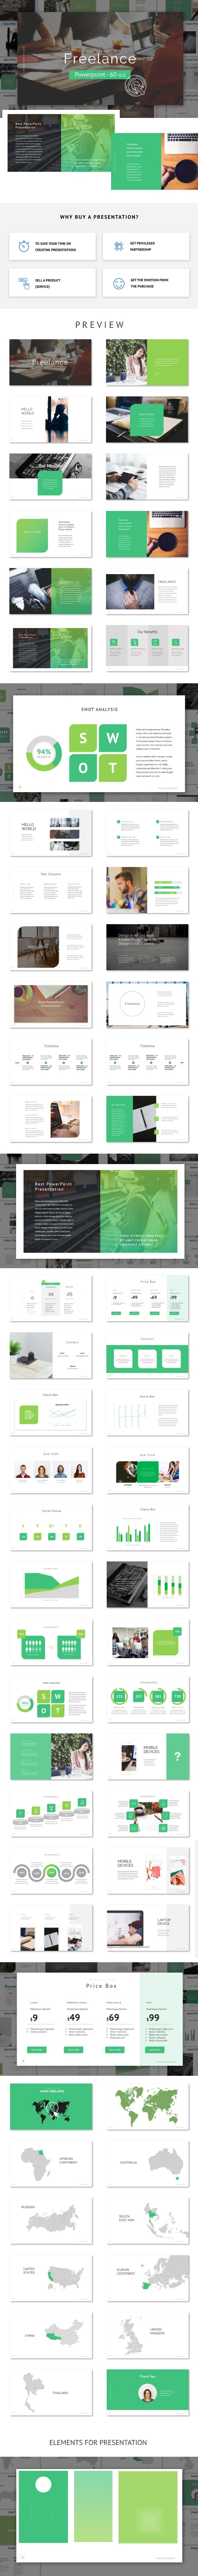 Freelance - Powerpoint Template - PowerPoint Templates Presentation Templates